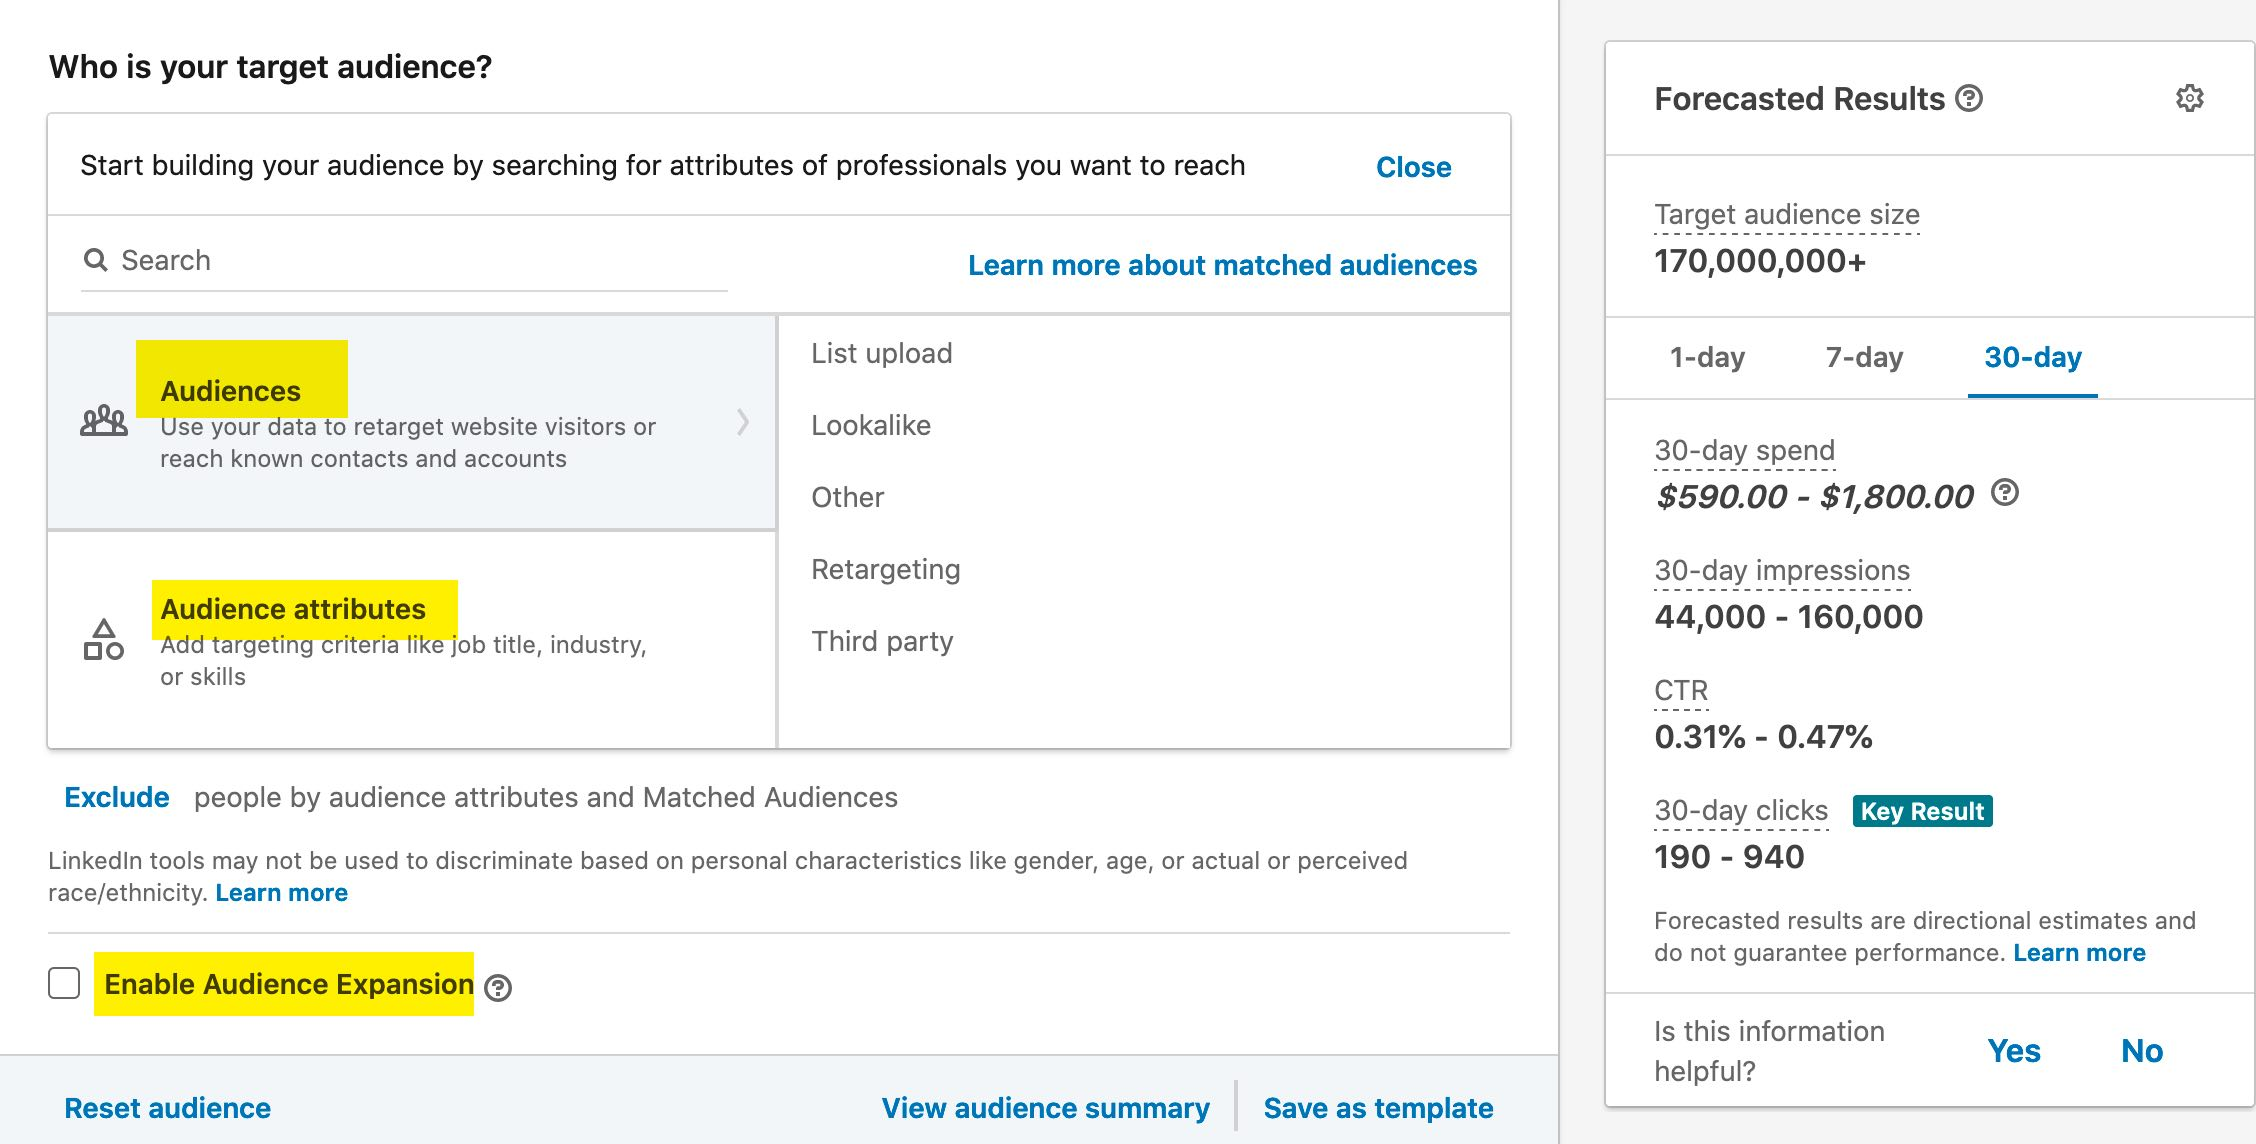 Introduction to LinkedIn Ads: Who is your target audience?